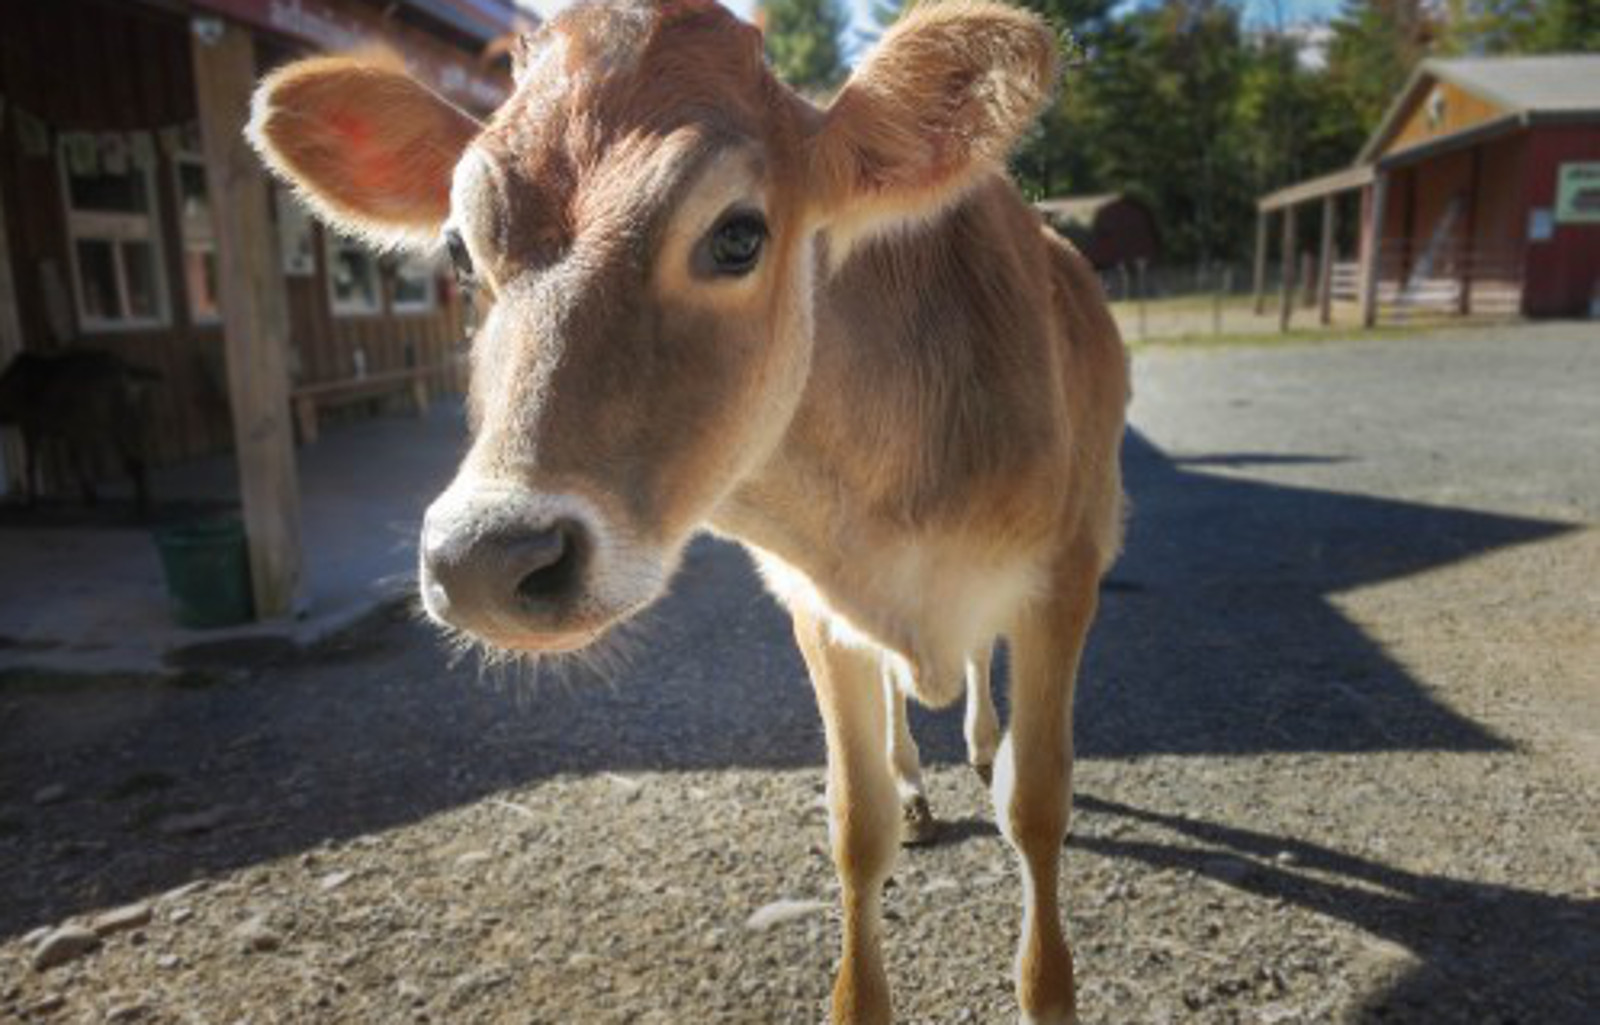 From Veal Crate to Heel Kicks: Maribeth's Second Chance at Woodstock Farm Sanctuary